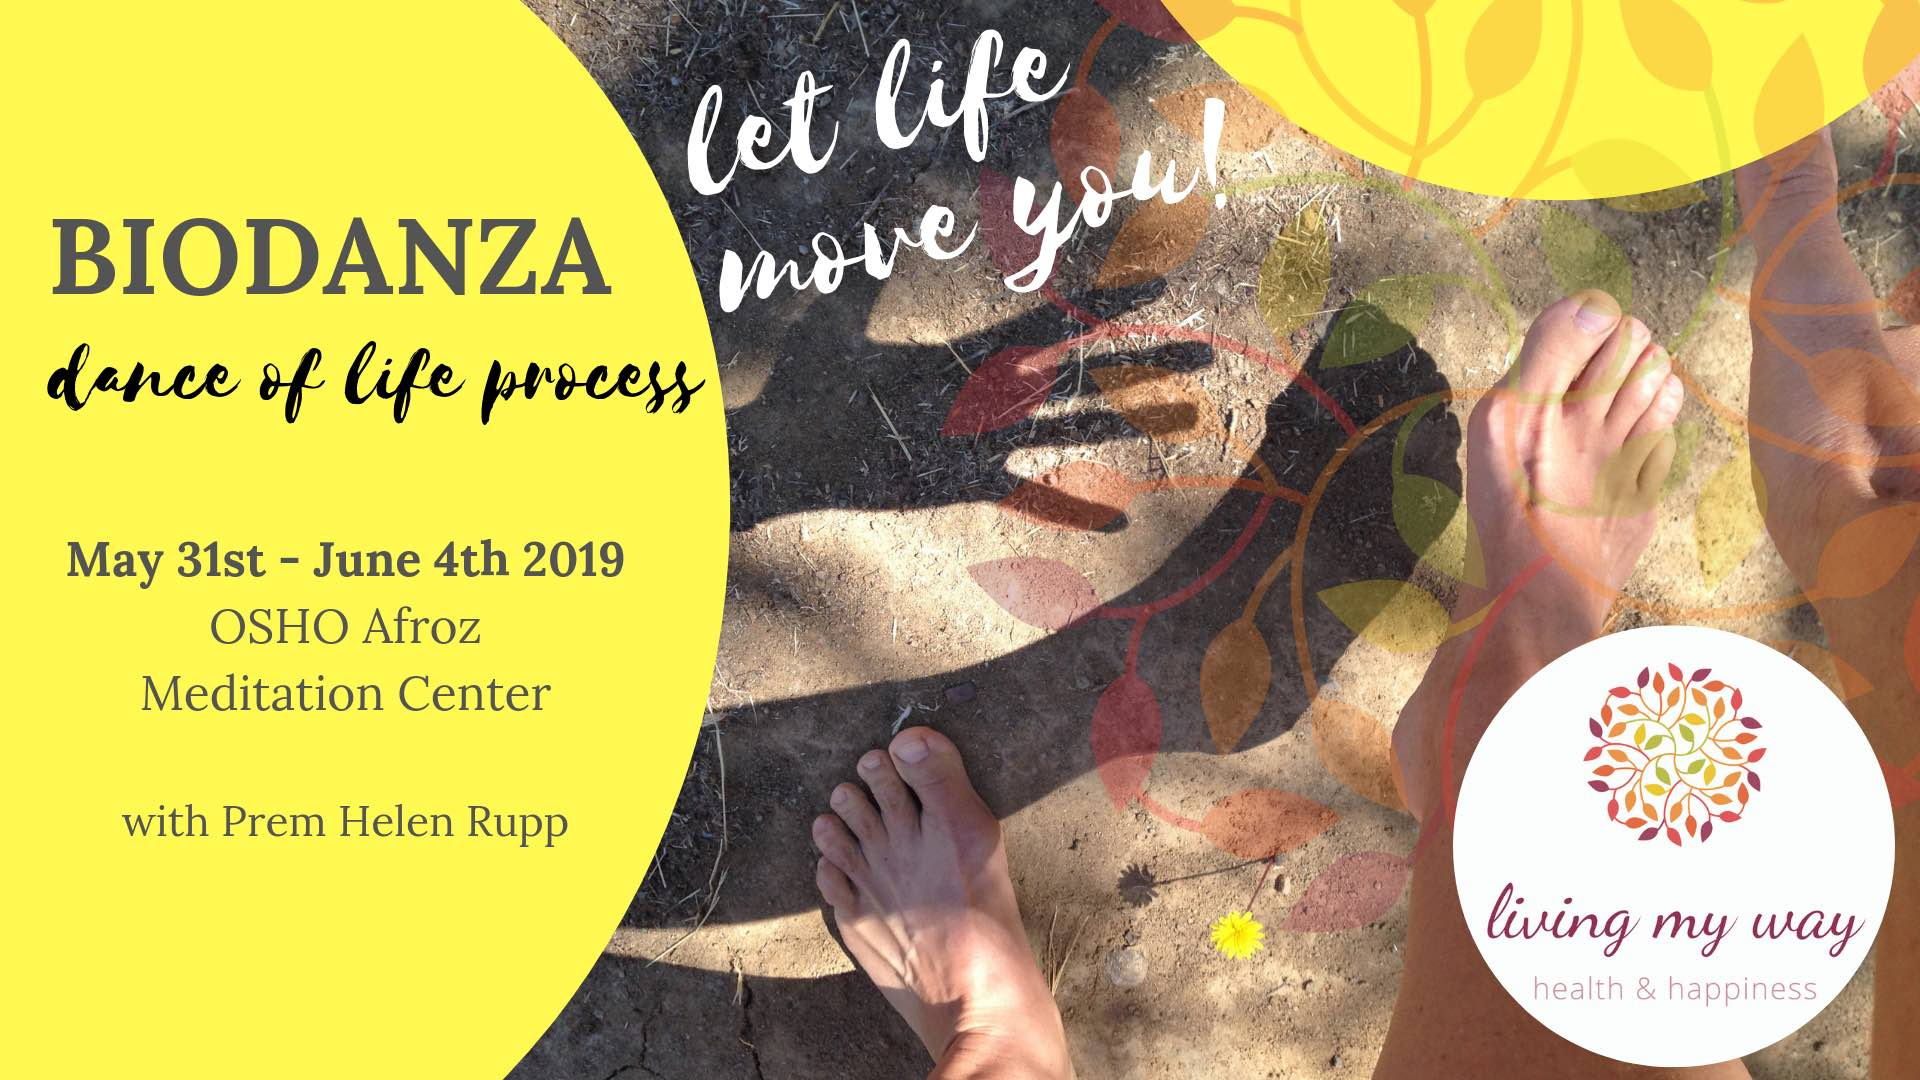 Biodanza Dance of Live Process Let Life Move You